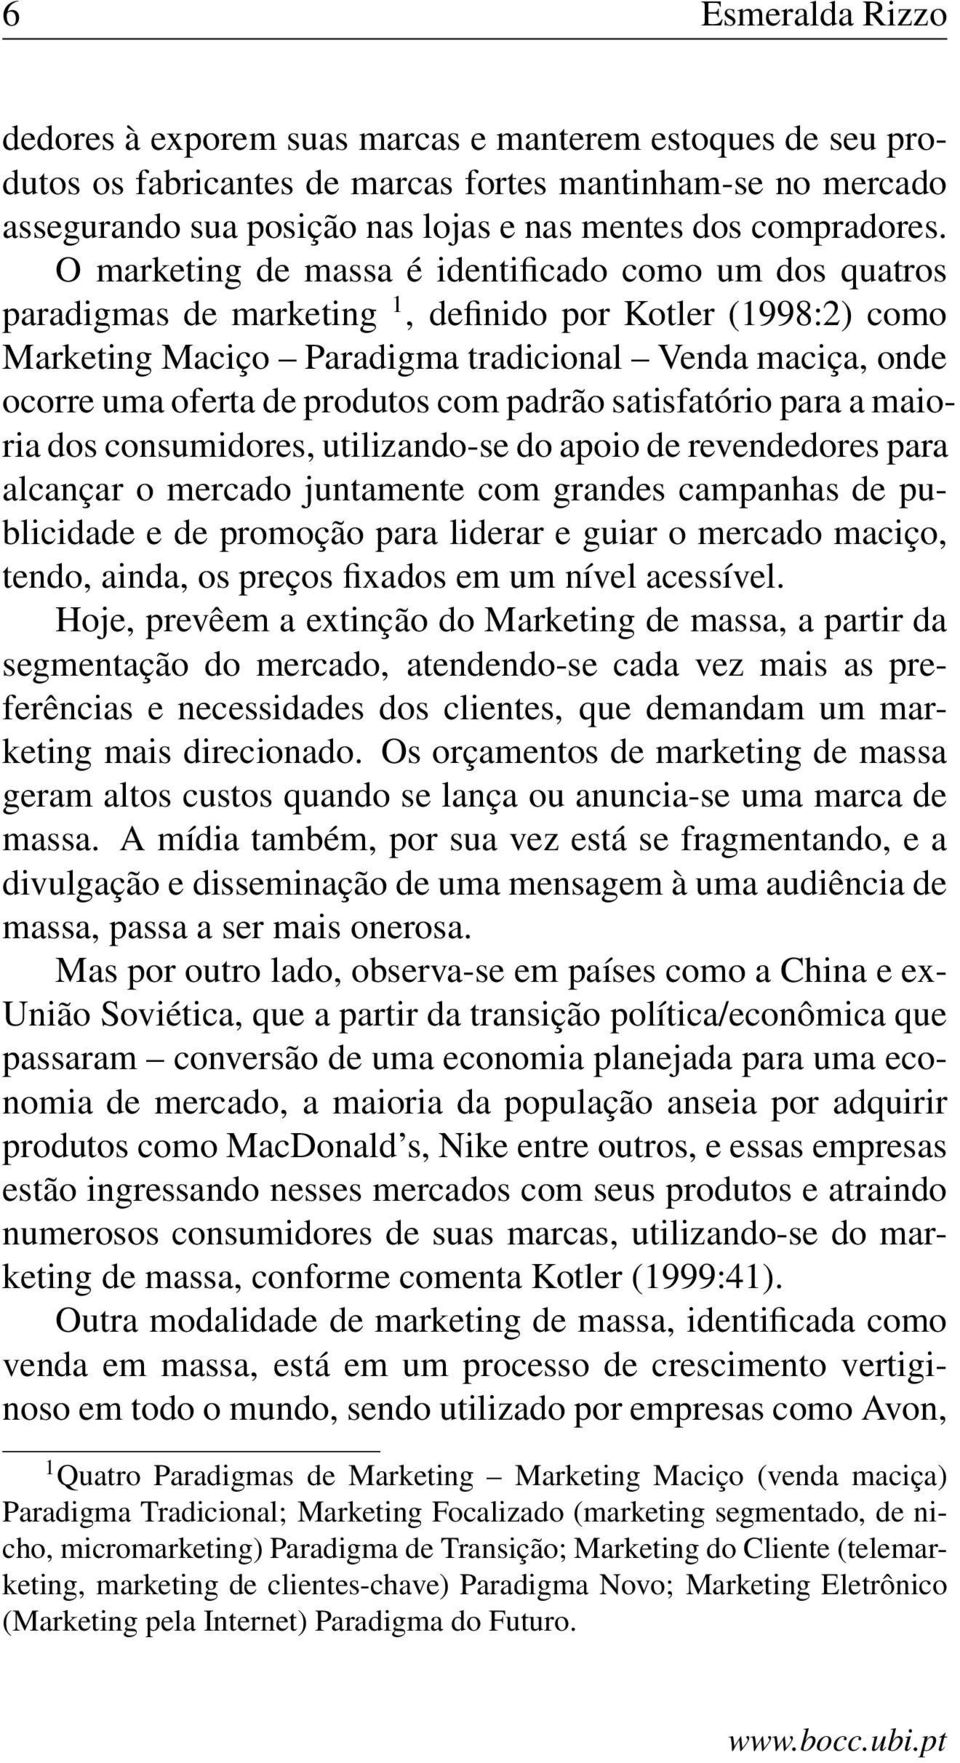 O marketing de massa é identificado como um dos quatros paradigmas de marketing 1, definido por Kotler (1998:2) como Marketing Maciço Paradigma tradicional Venda maciça, onde ocorre uma oferta de